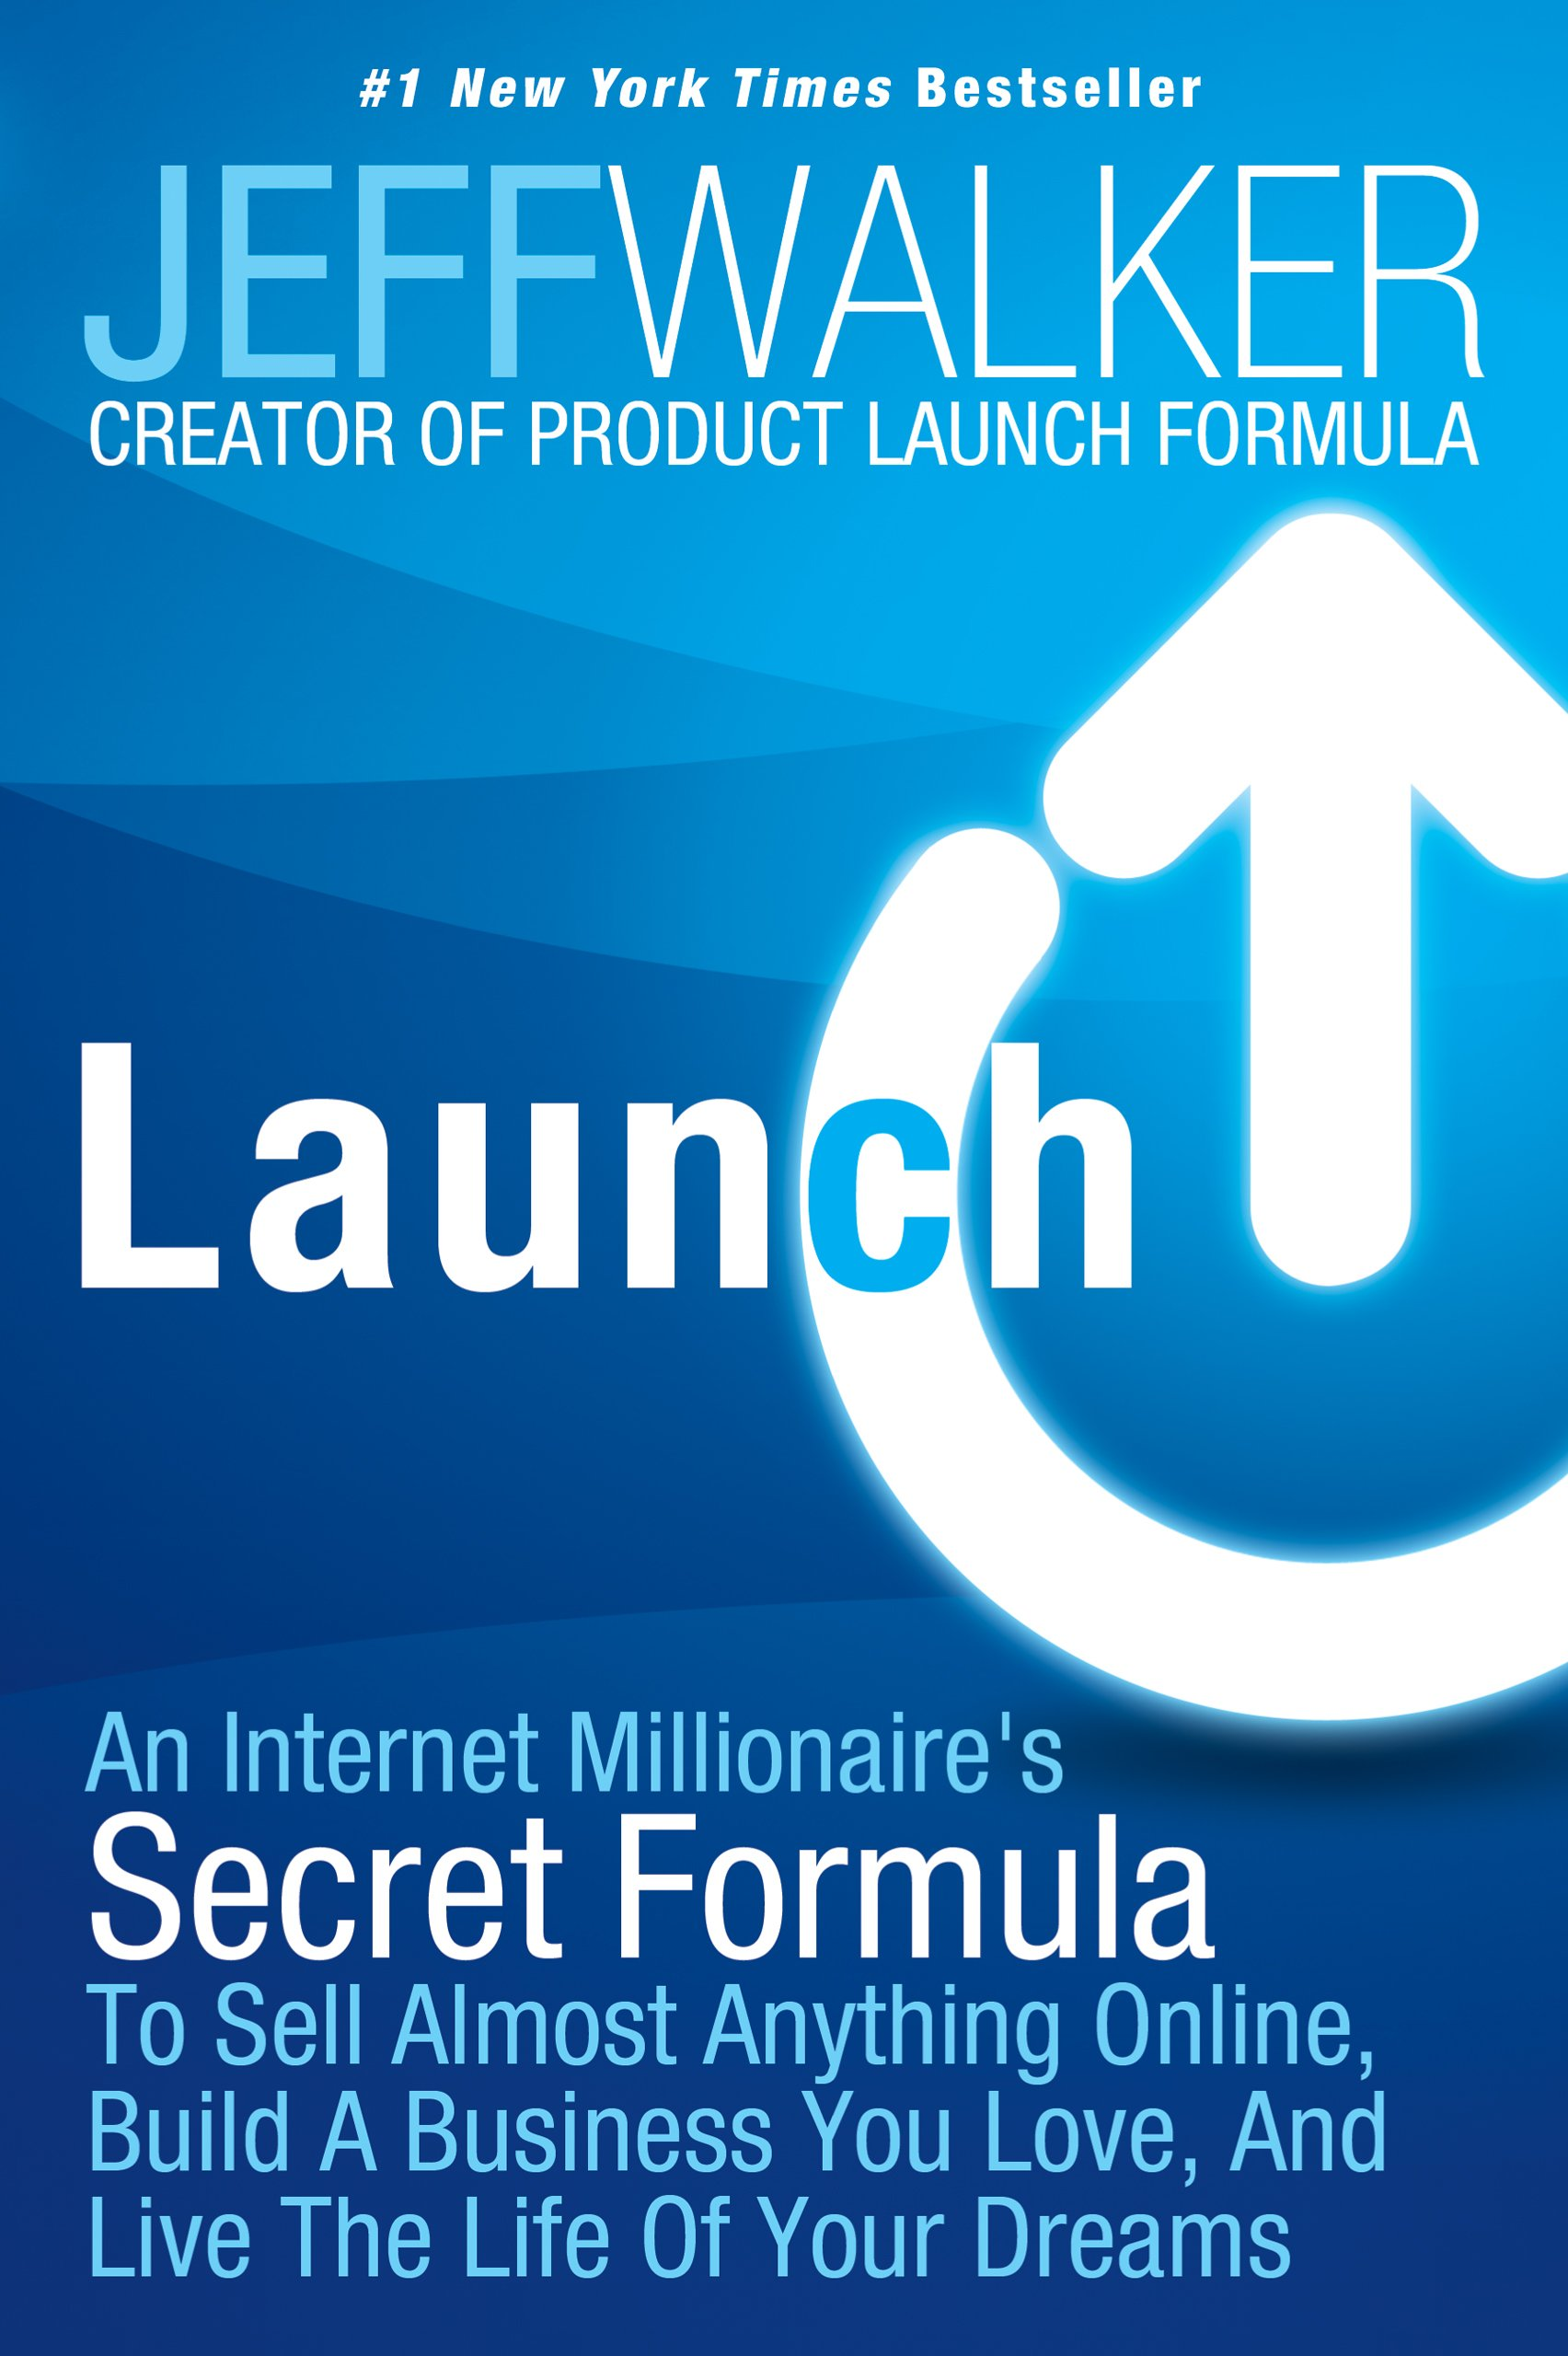 Launch an internet millionaires secret formula to sell almost launch an internet millionaires secret formula to sell almost anything online build a business you love and live the life of your dreams jeff walker malvernweather Choice Image